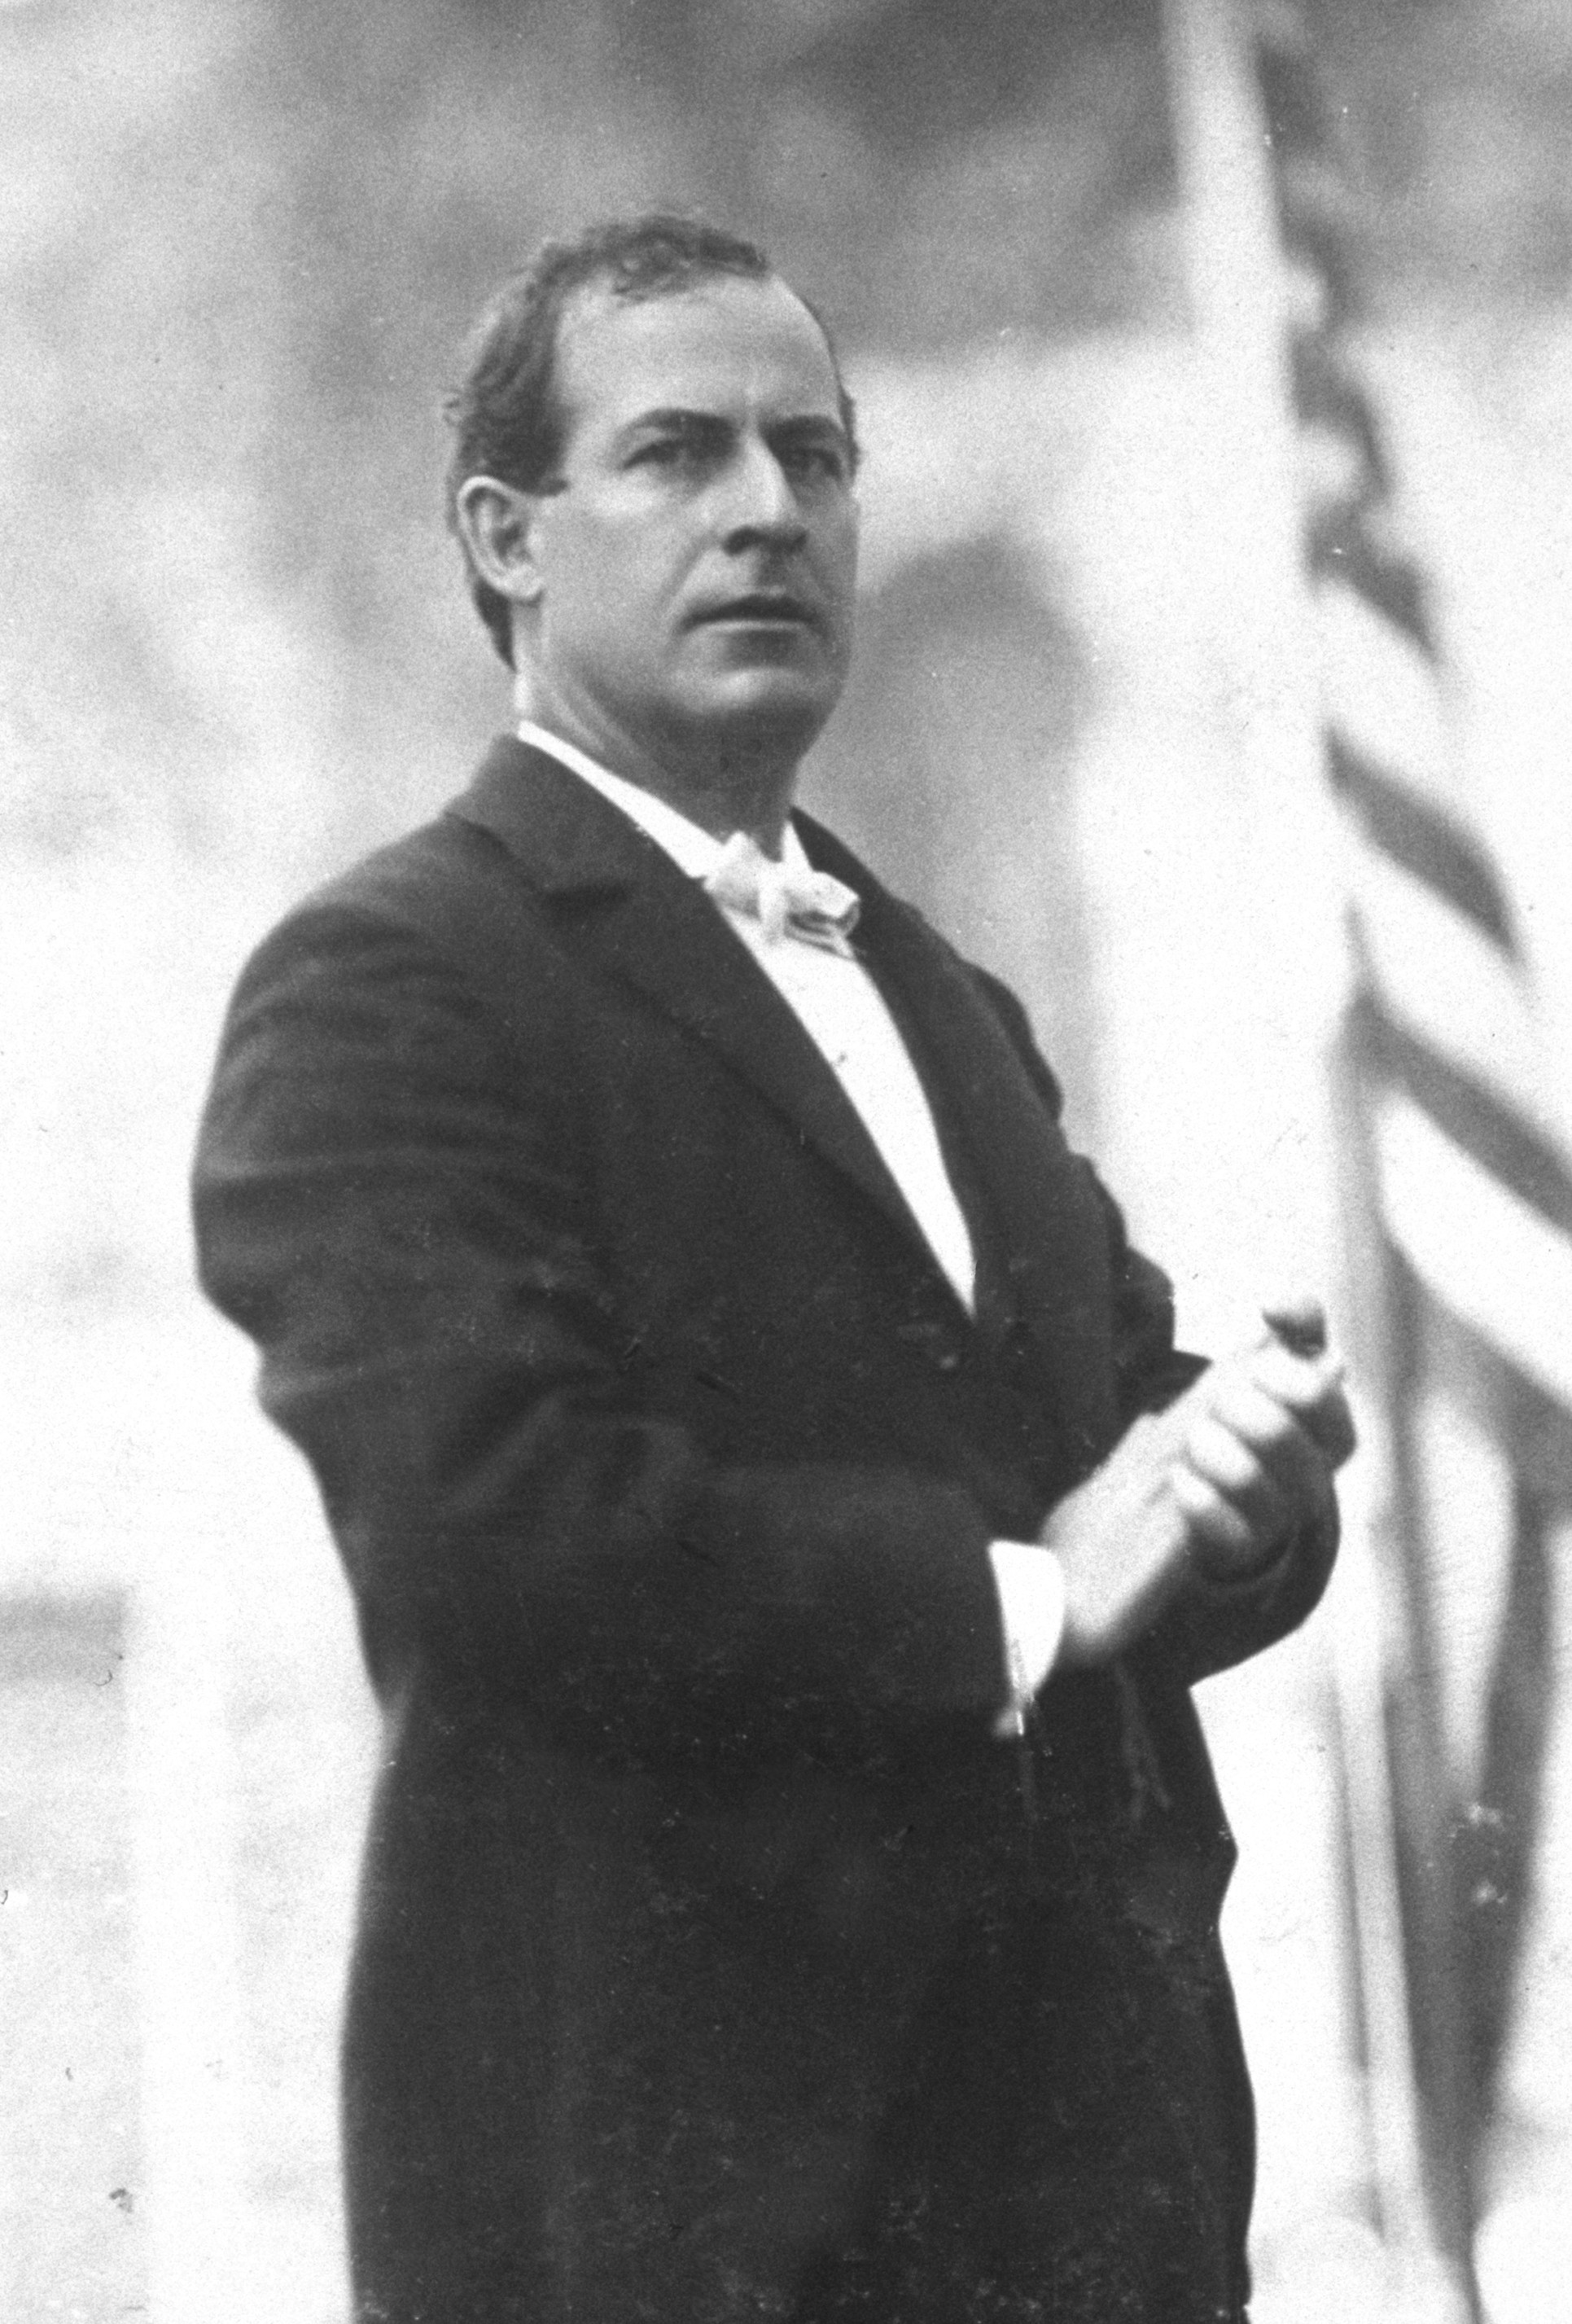 William-Jennings-Bryan-speaking-c1896